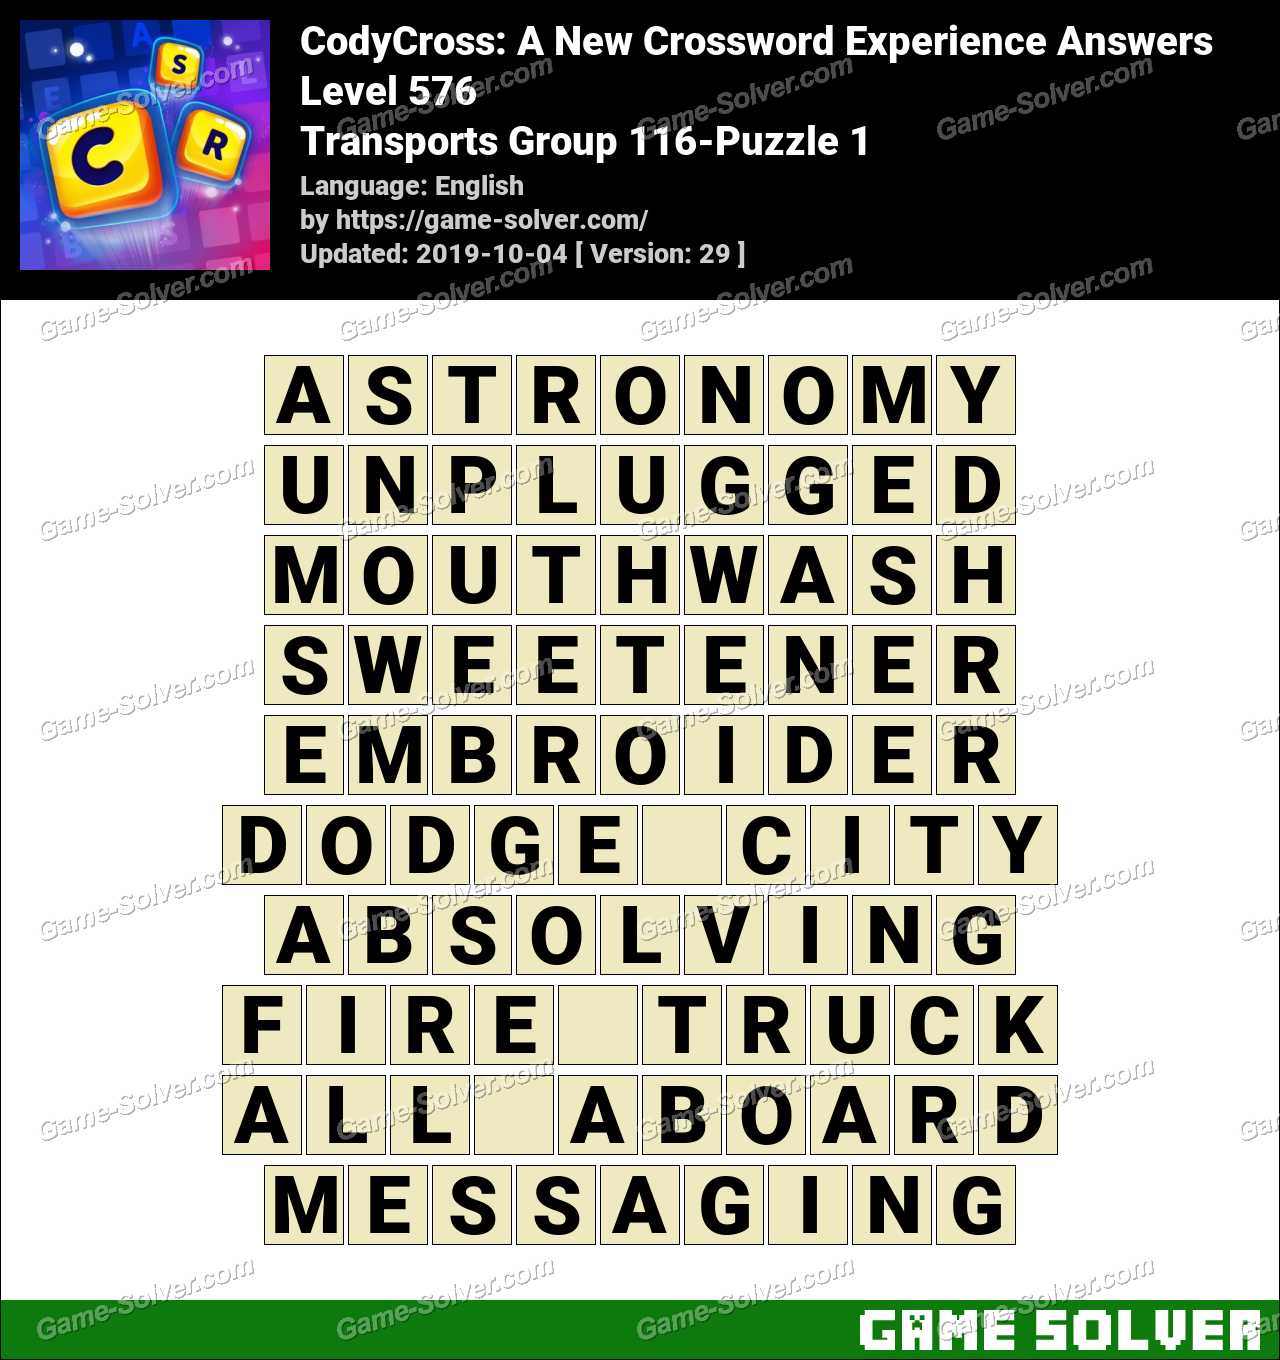 CodyCross Transports Group 116-Puzzle 1 Answers